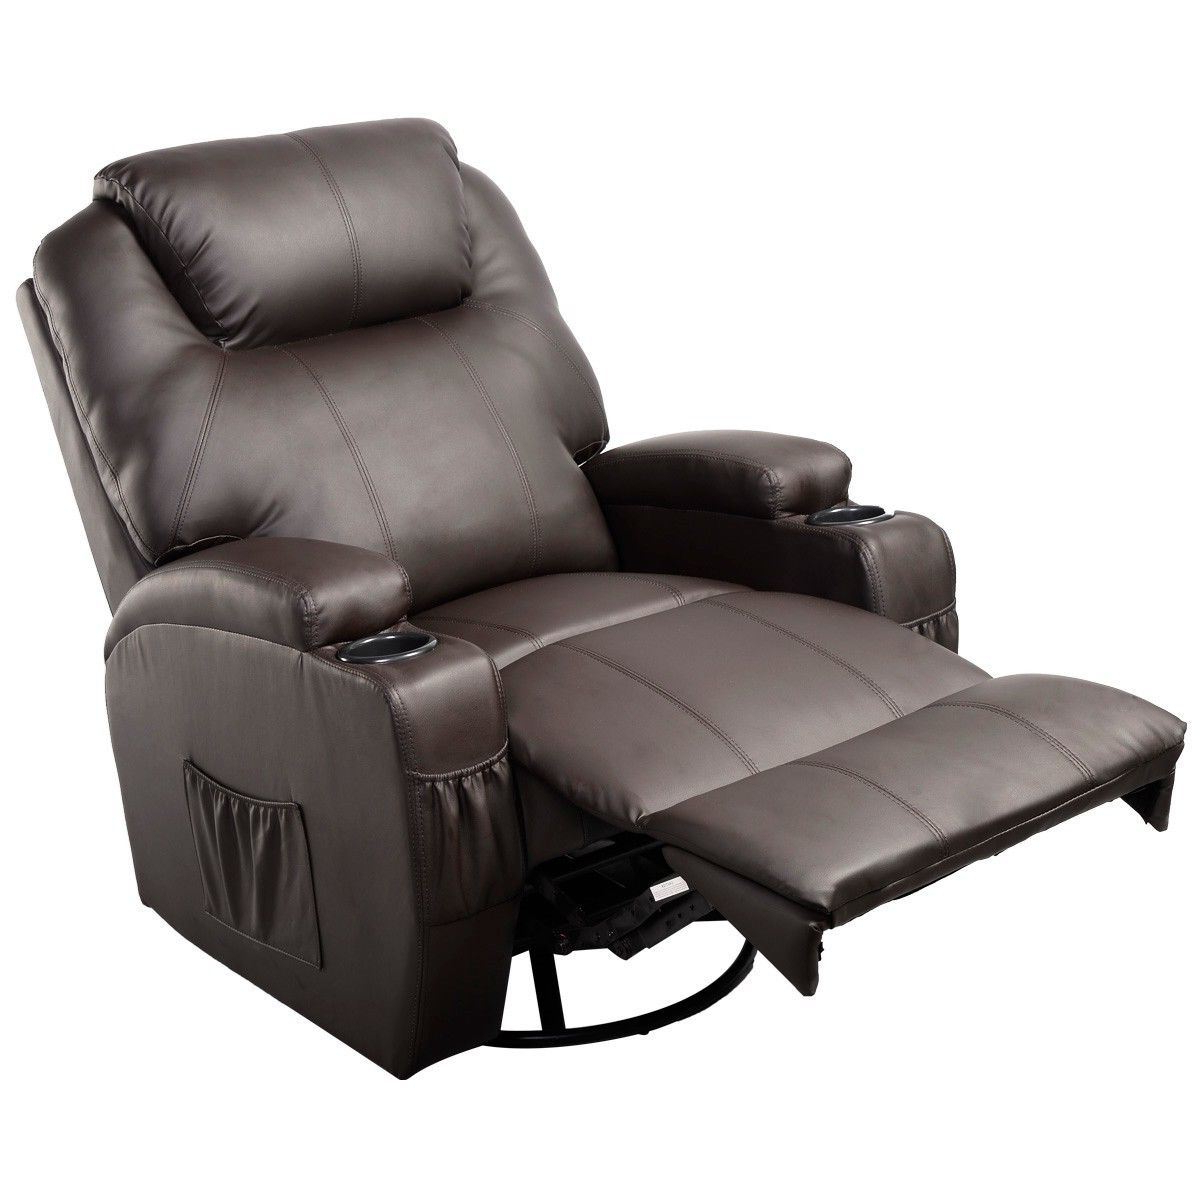 Best Recliner Sofa Chair 44 For Your Modern Sofa Ideas With Recliner In Well Known Sofa Chair Recliner (Gallery 2 of 20)